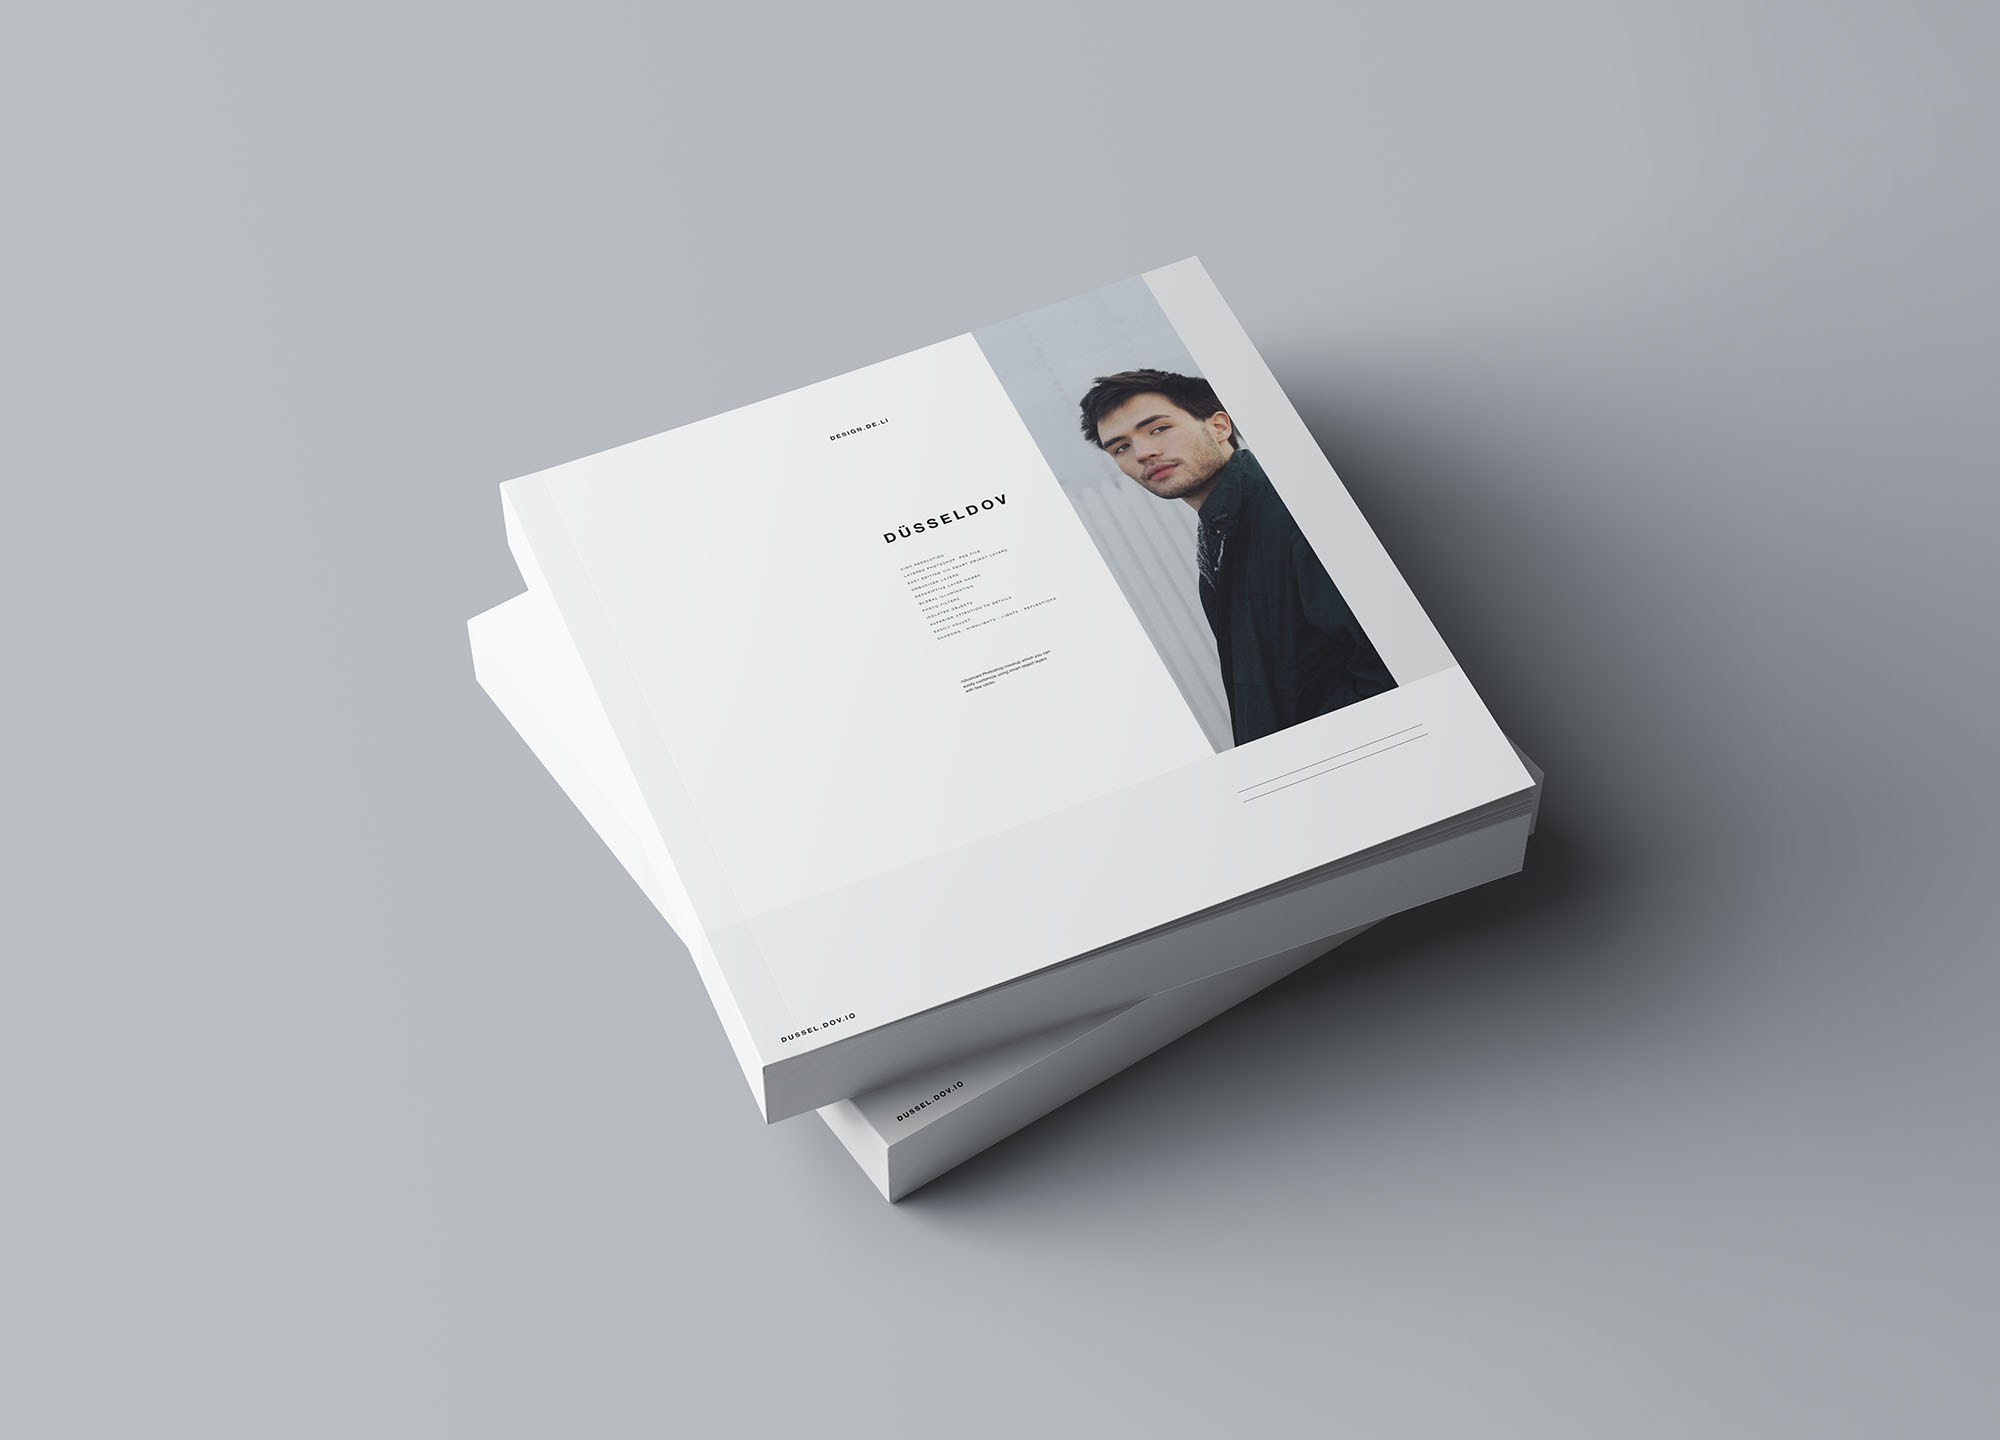 Square Softcover Book Mockup 2